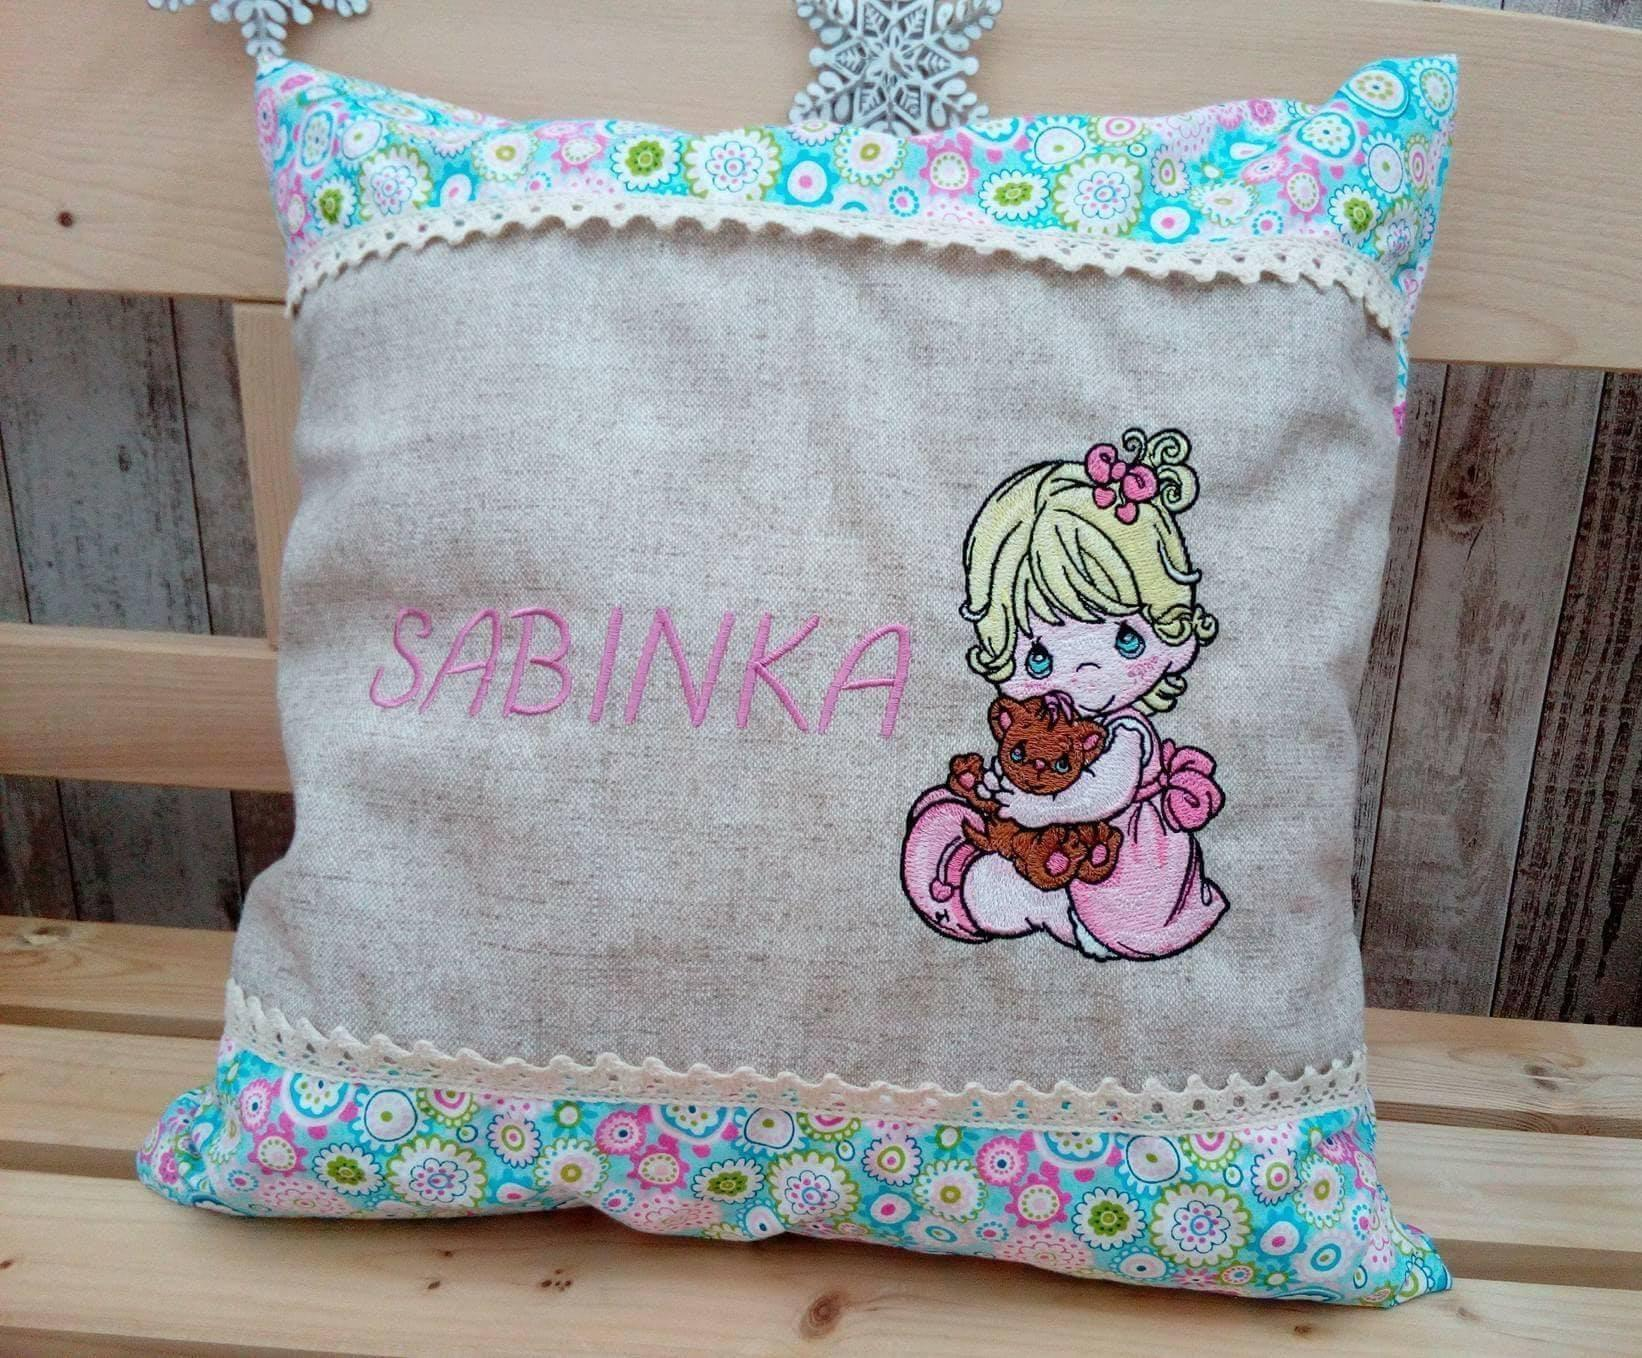 Adorable cushion with Precious Moments Girl and Toy embroidery design